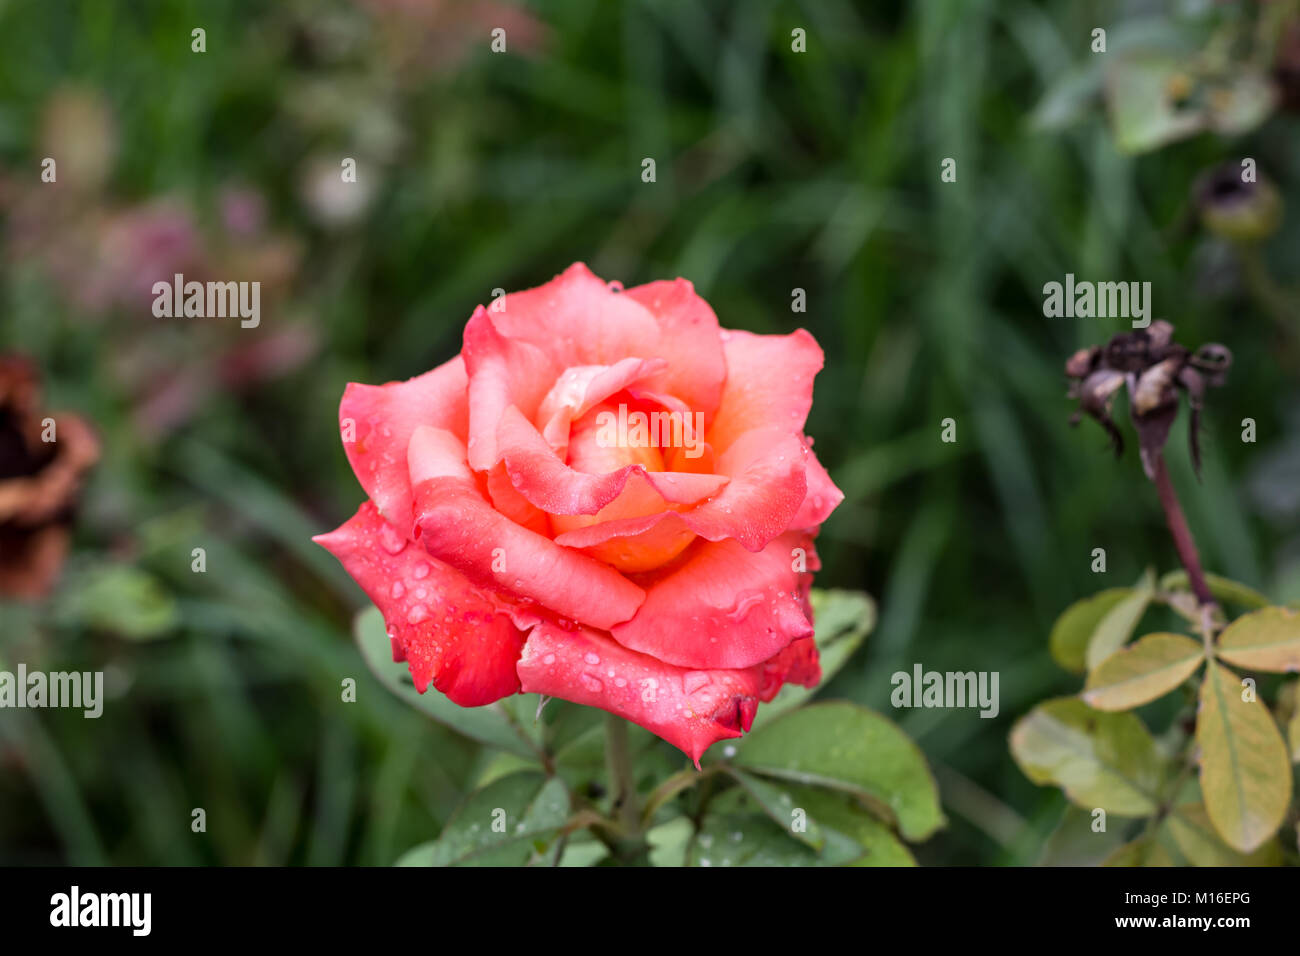 Early Morning Beautiful Rose Flower Garden Dew On Roses With